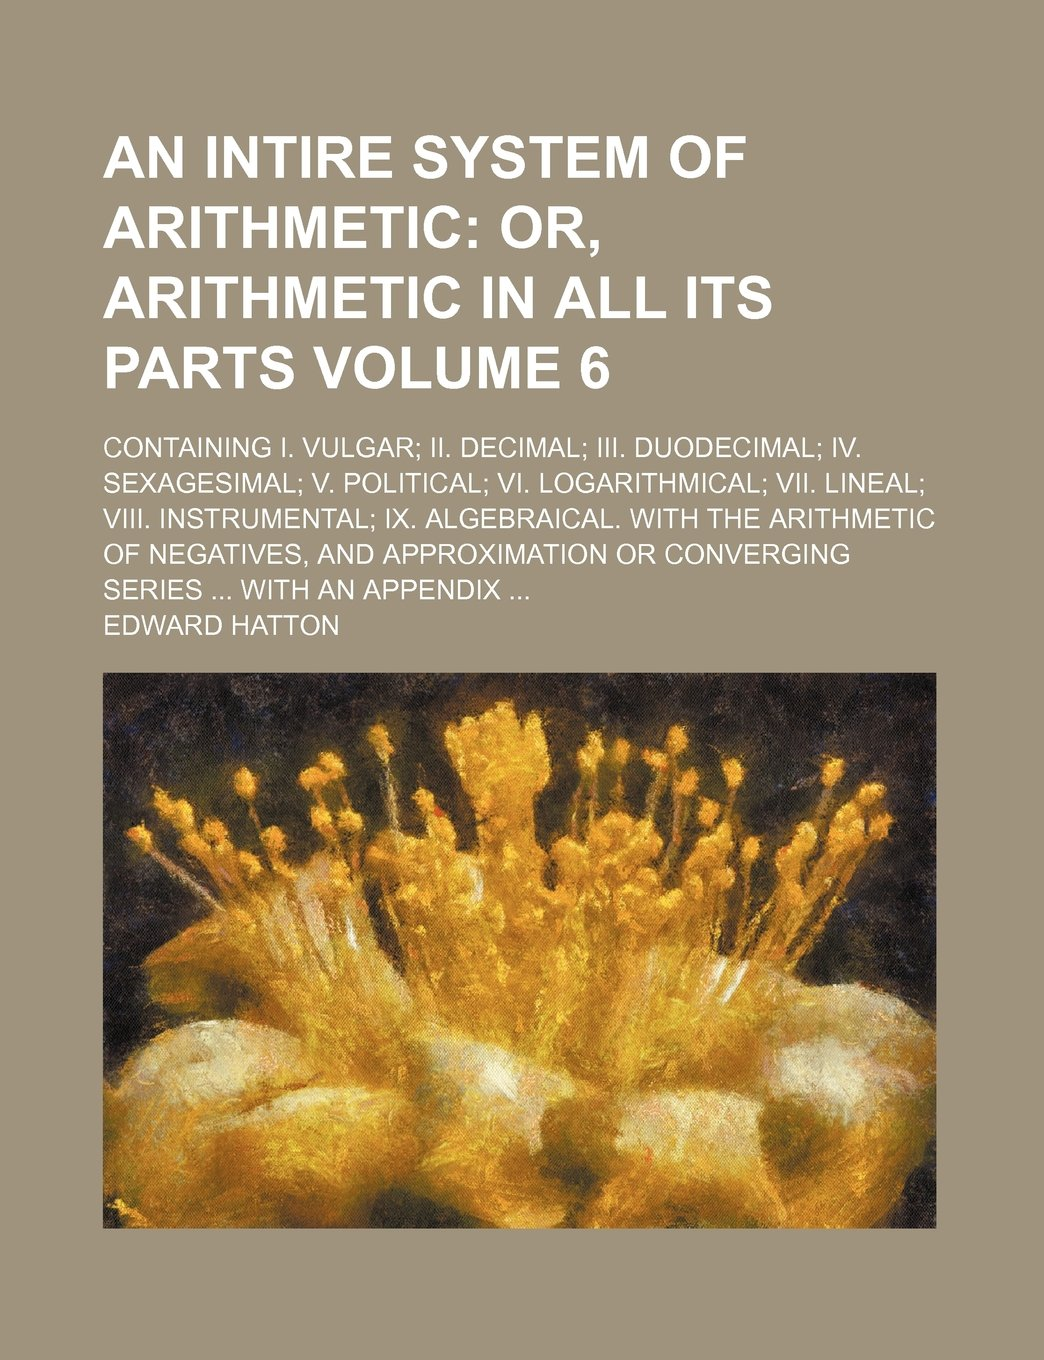 An intire system of arithmetic Volume 6; Containing I. Vulgar; II. Decimal; III. Duodecimal; IV. Sexagesimal; V. Political; VI. Logarithmical; VII. ... of negatives, and approximation or converg pdf epub